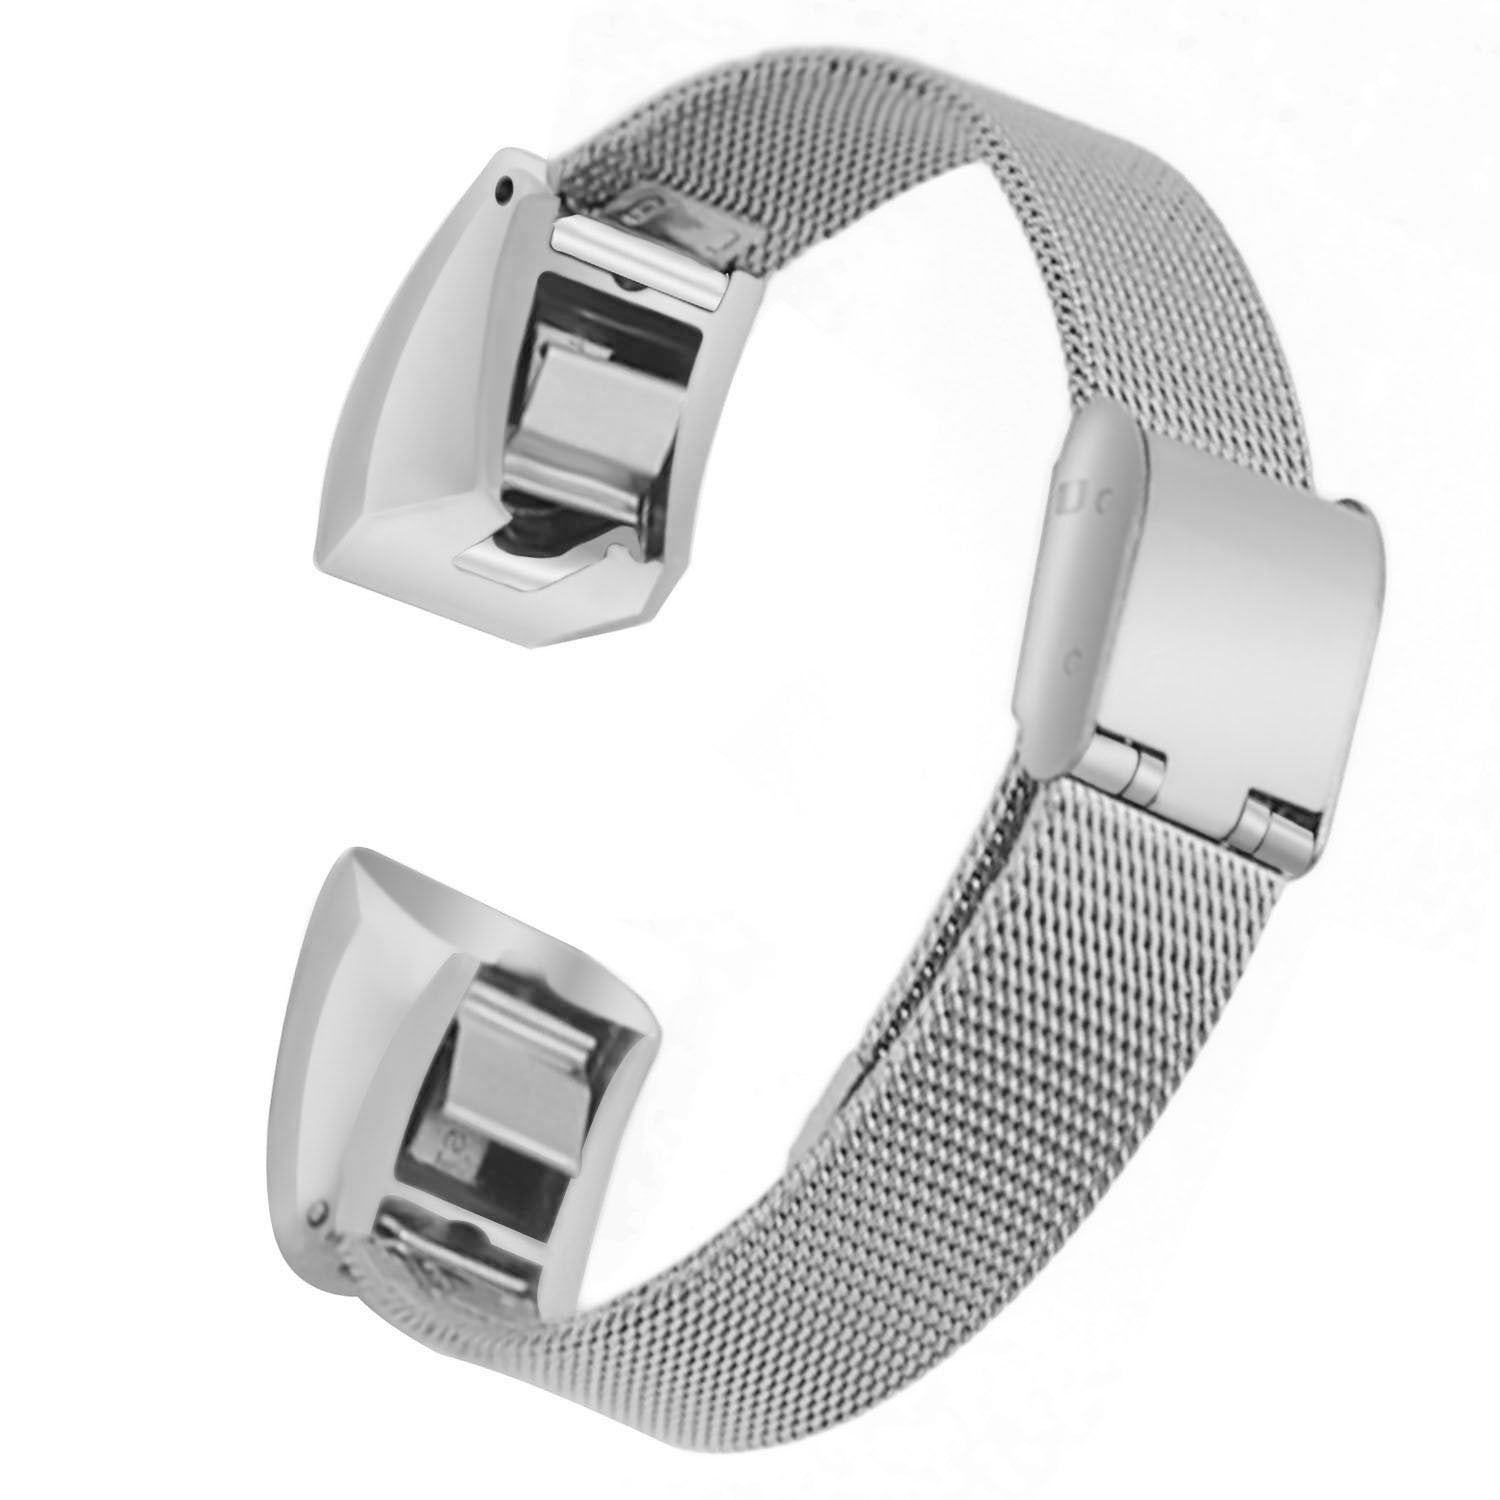 Satkago Stainless Steel Slim Sports Band Replacement Watchband for Fitbit Alta HR and Alta Silver